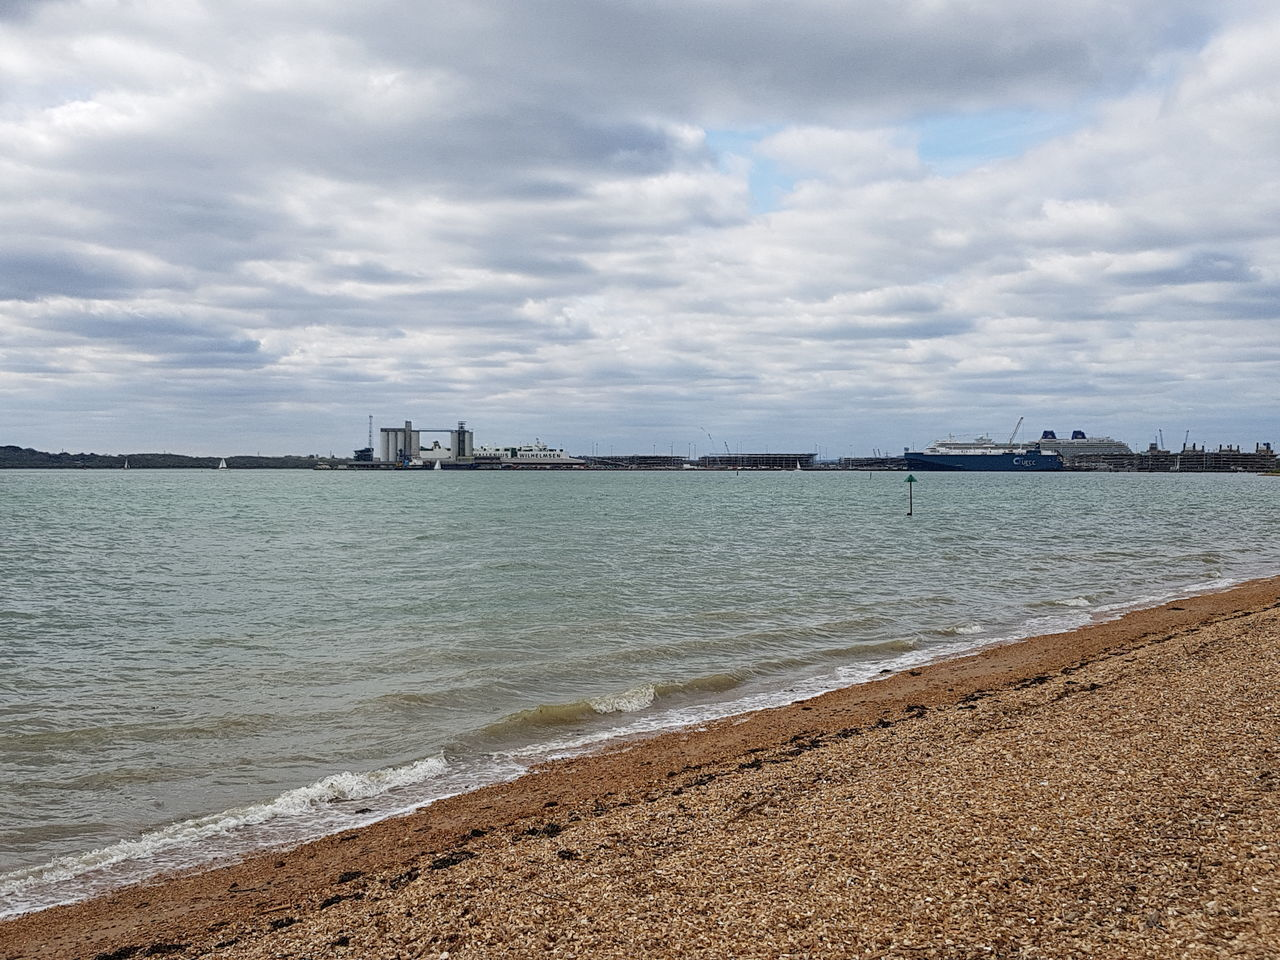 Southampton Water. The weather could be better. Cloud - Sky Beach Sky Water Outdoors Day Sea No People Scenics Architecture Tranquility Building Exterior Nature Harbor Harbour Beauty In Nature City Cityscape Southampton Docks Southampton Southampton Beach